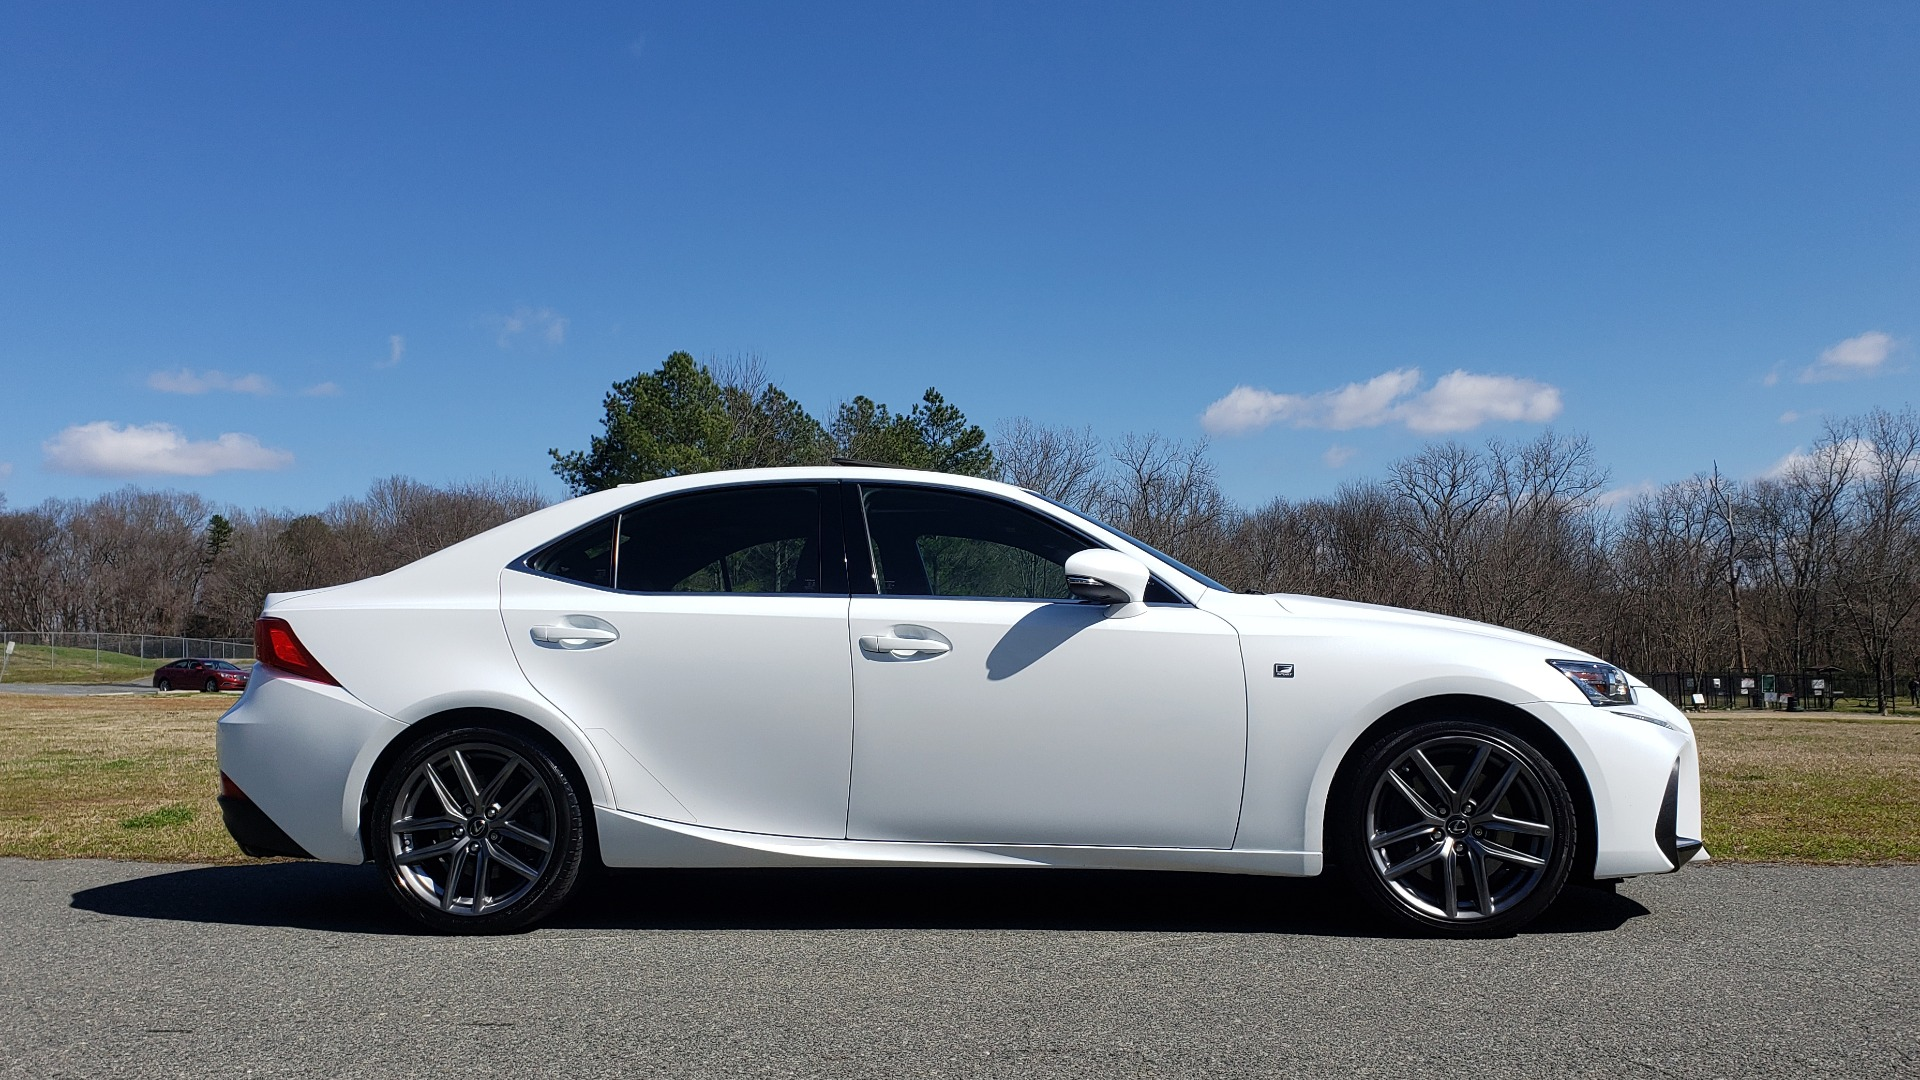 Used 2017 Lexus IS 200T F-SPORT / SUNROOF / REARVIEW / VENT SEATS for sale Sold at Formula Imports in Charlotte NC 28227 6